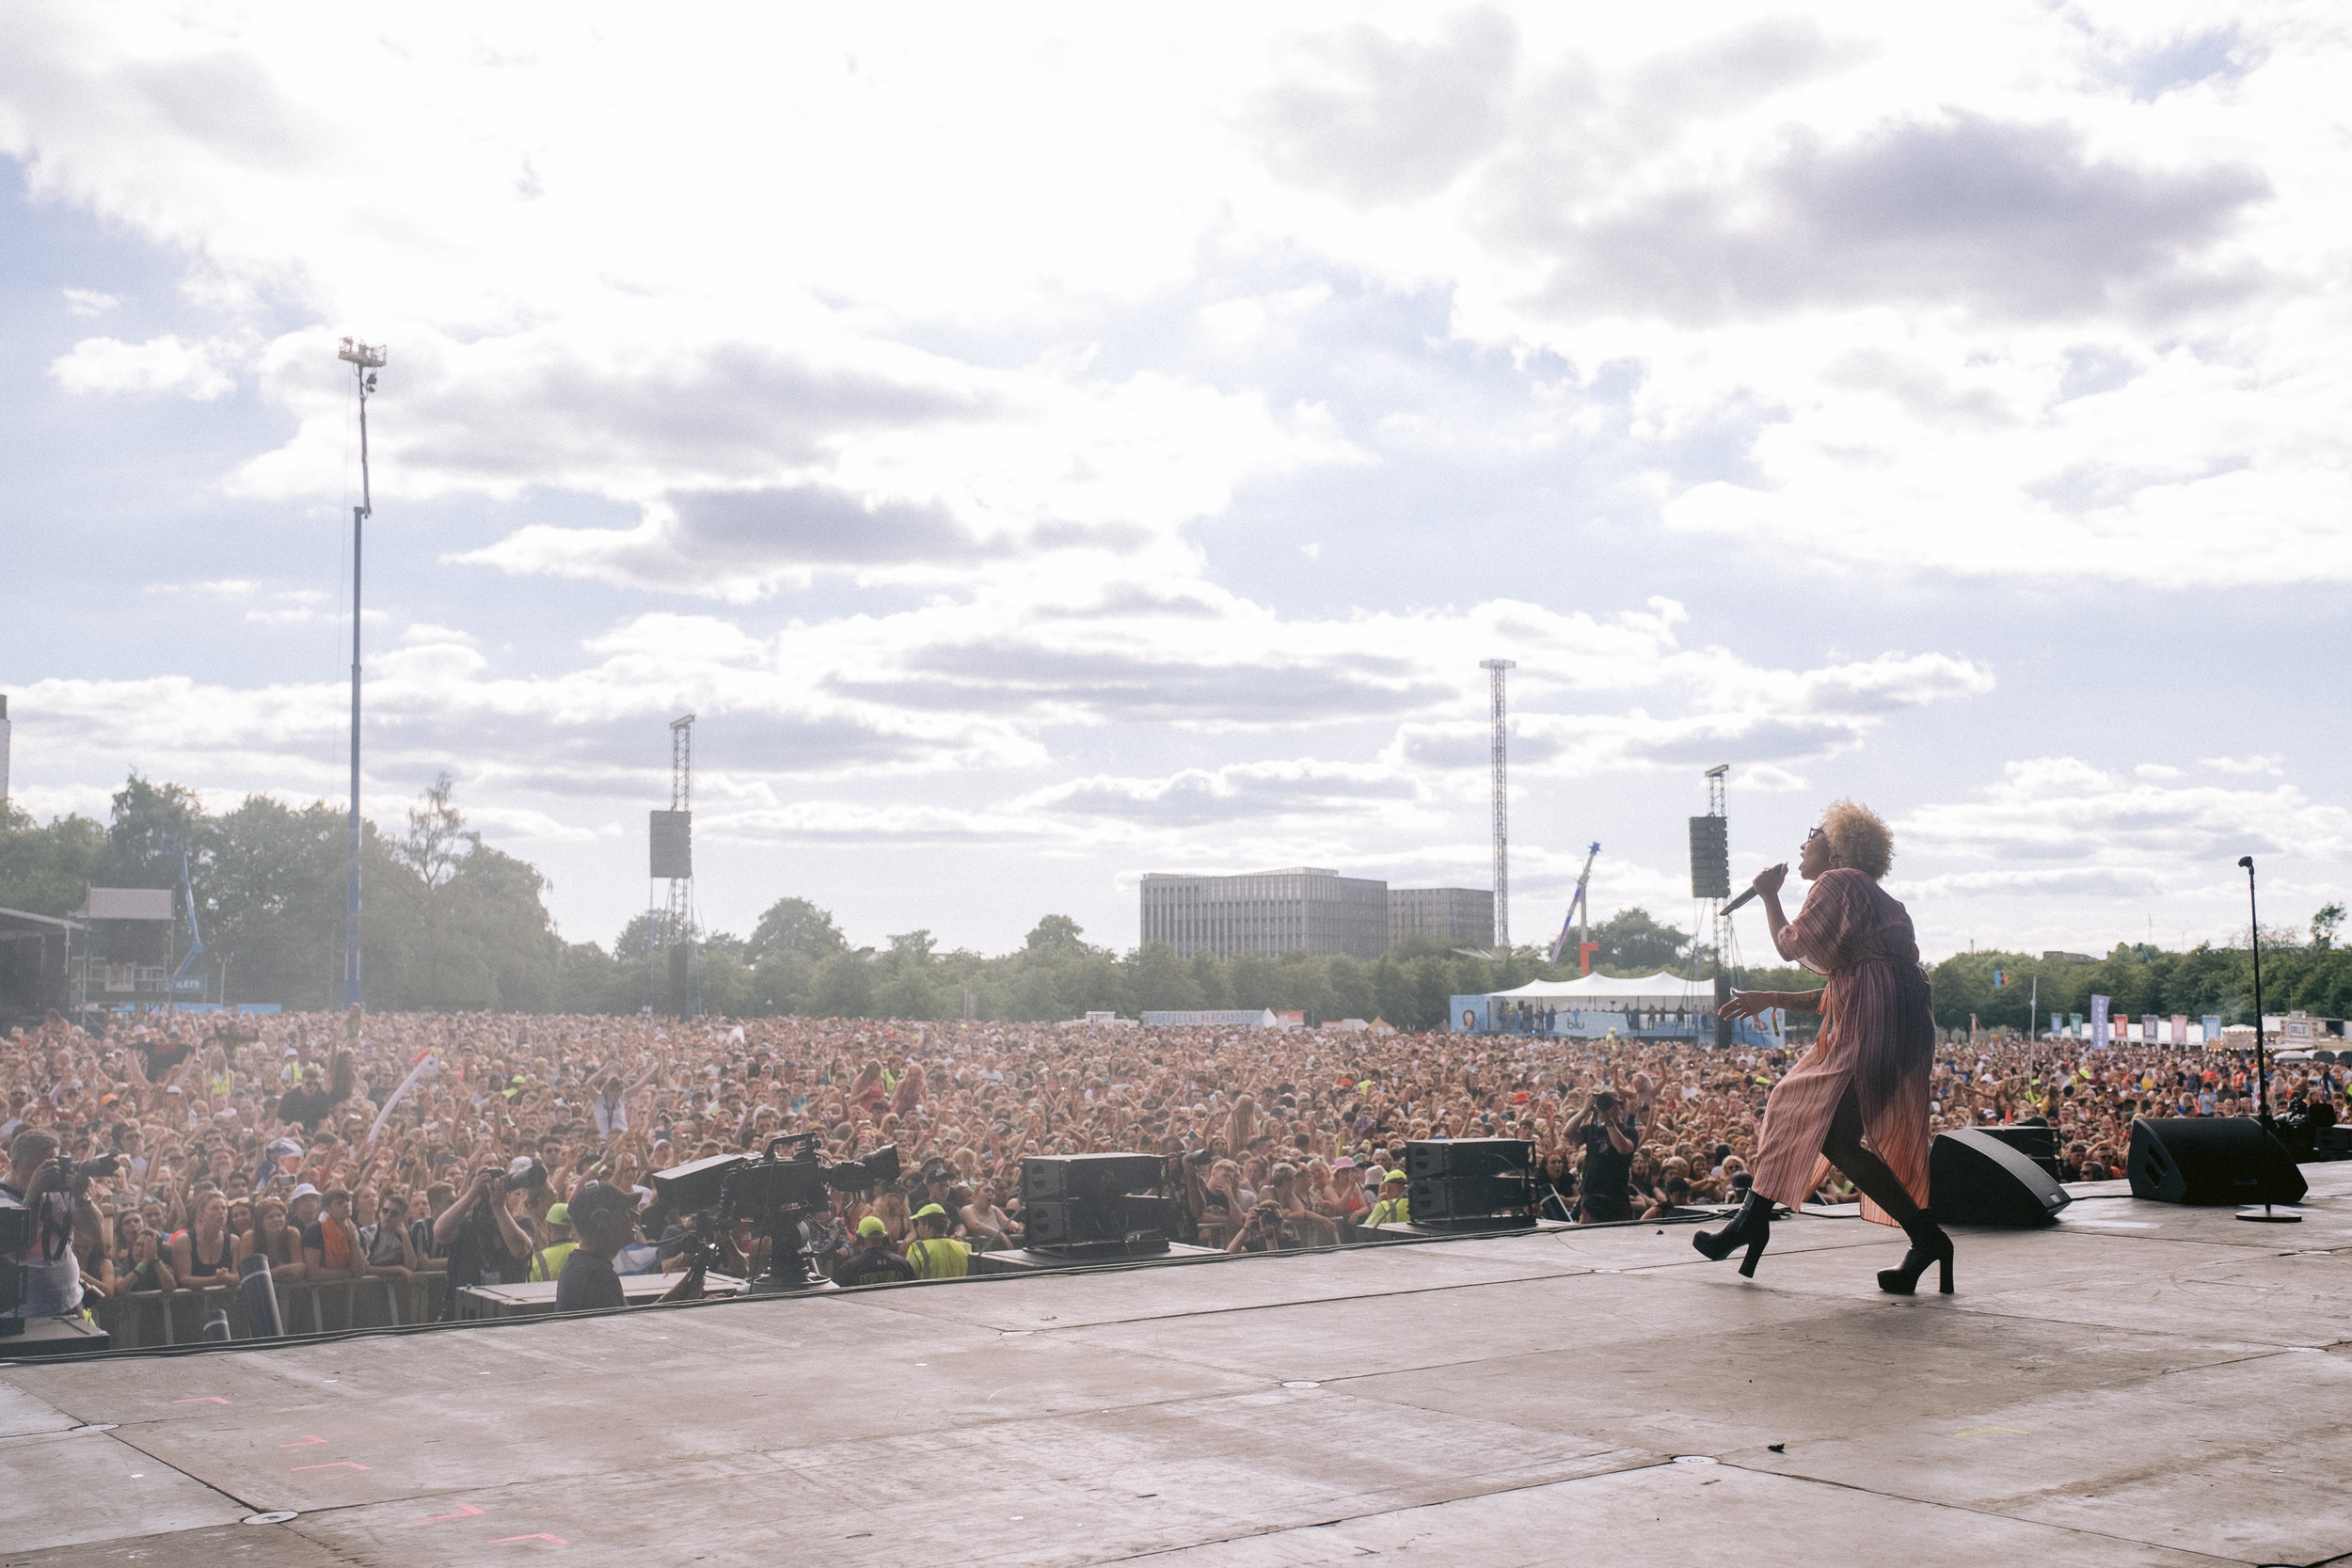 EMELI SANDE PERFORMING AT TRNSMT FESTIVAL 2019  PICTURE BY: EUAN ROBERTSON